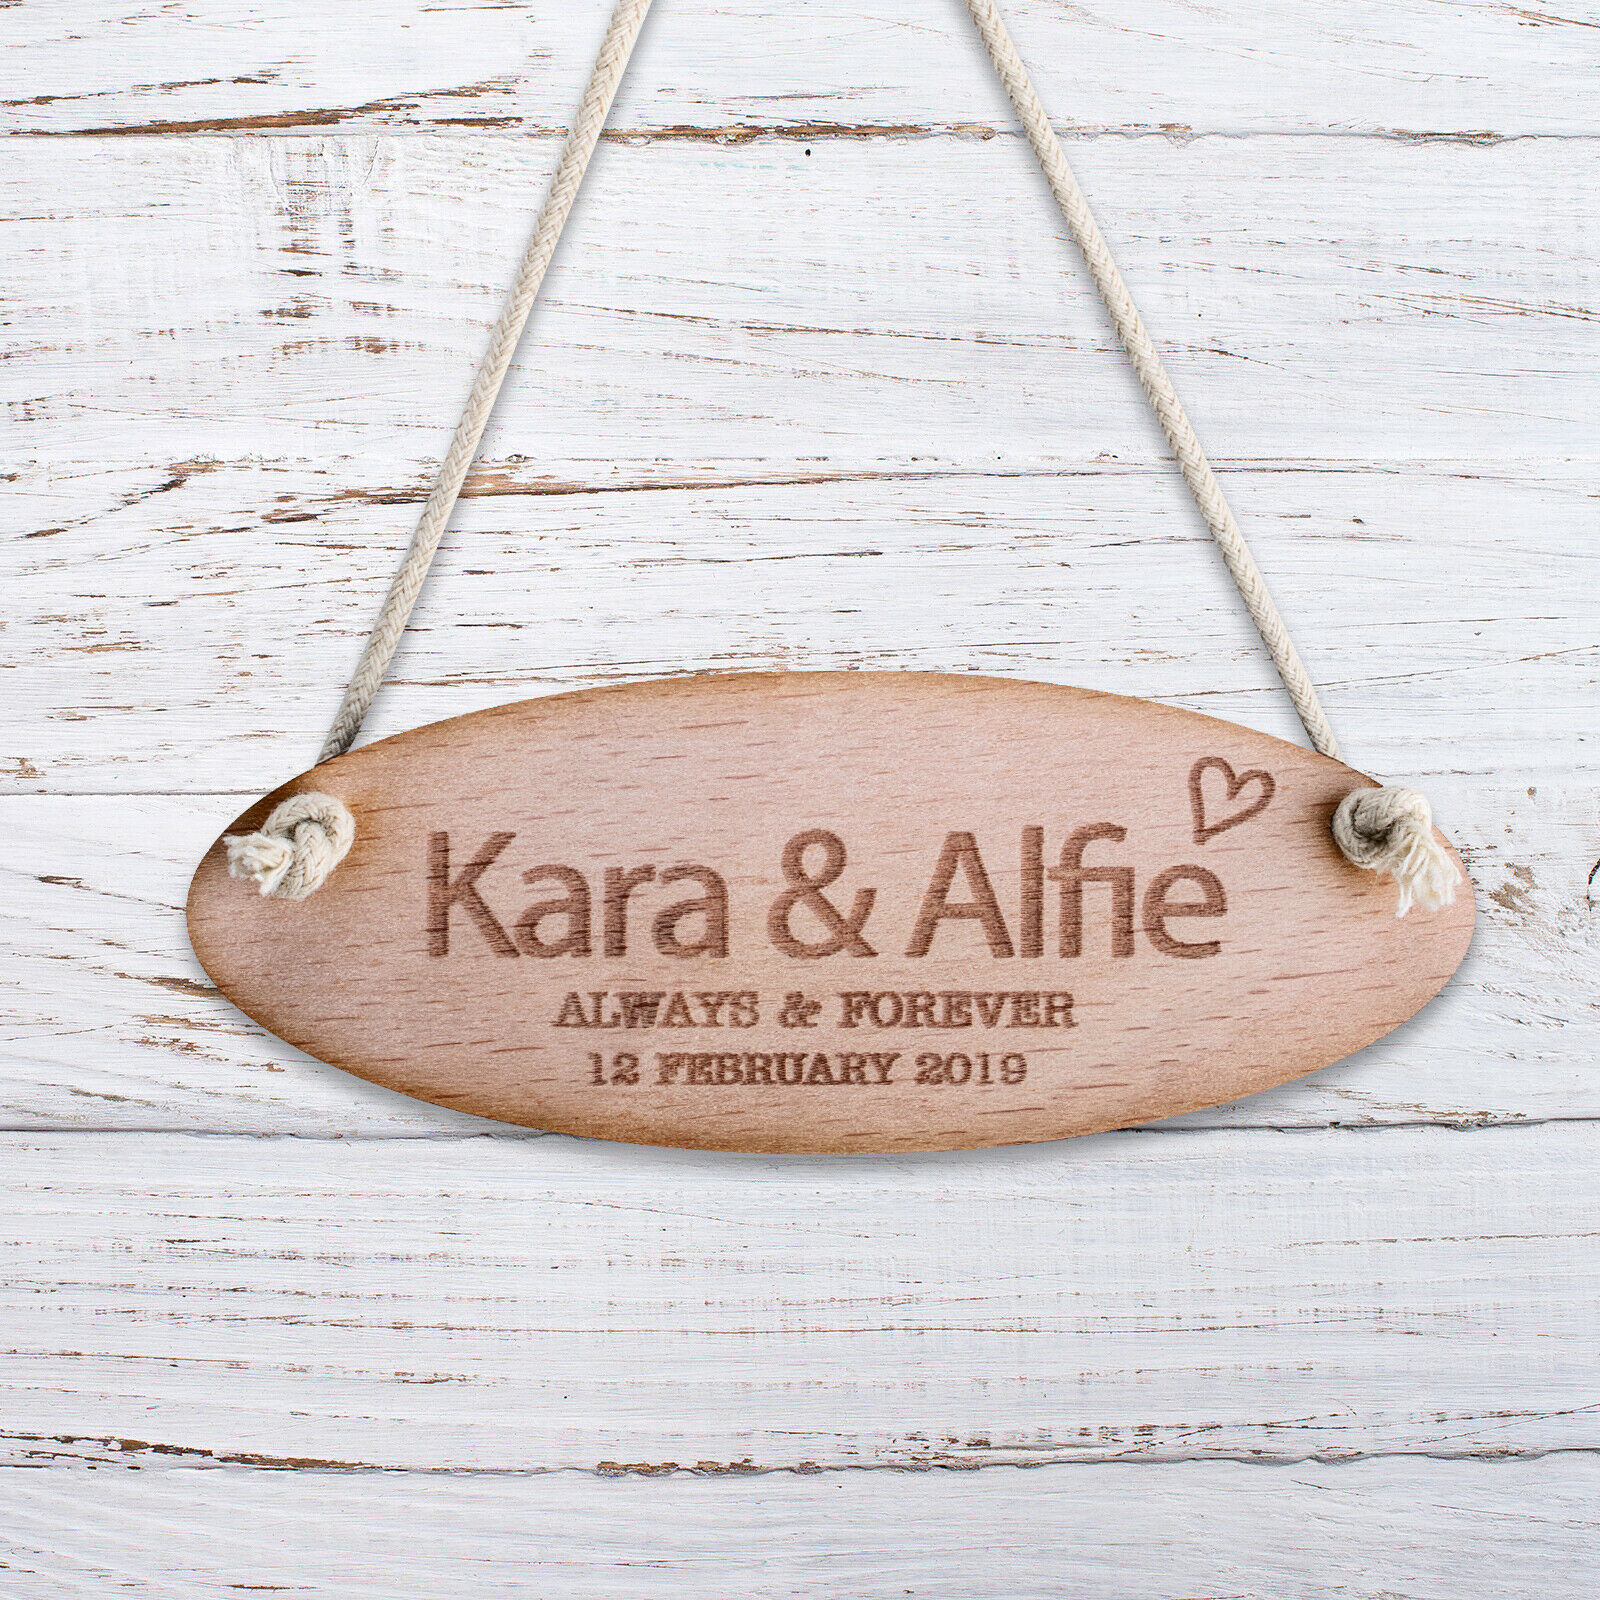 Details about Personalised Wooden Door Signs Shabby Chic Hanging Plaques  Any Name Kids Room